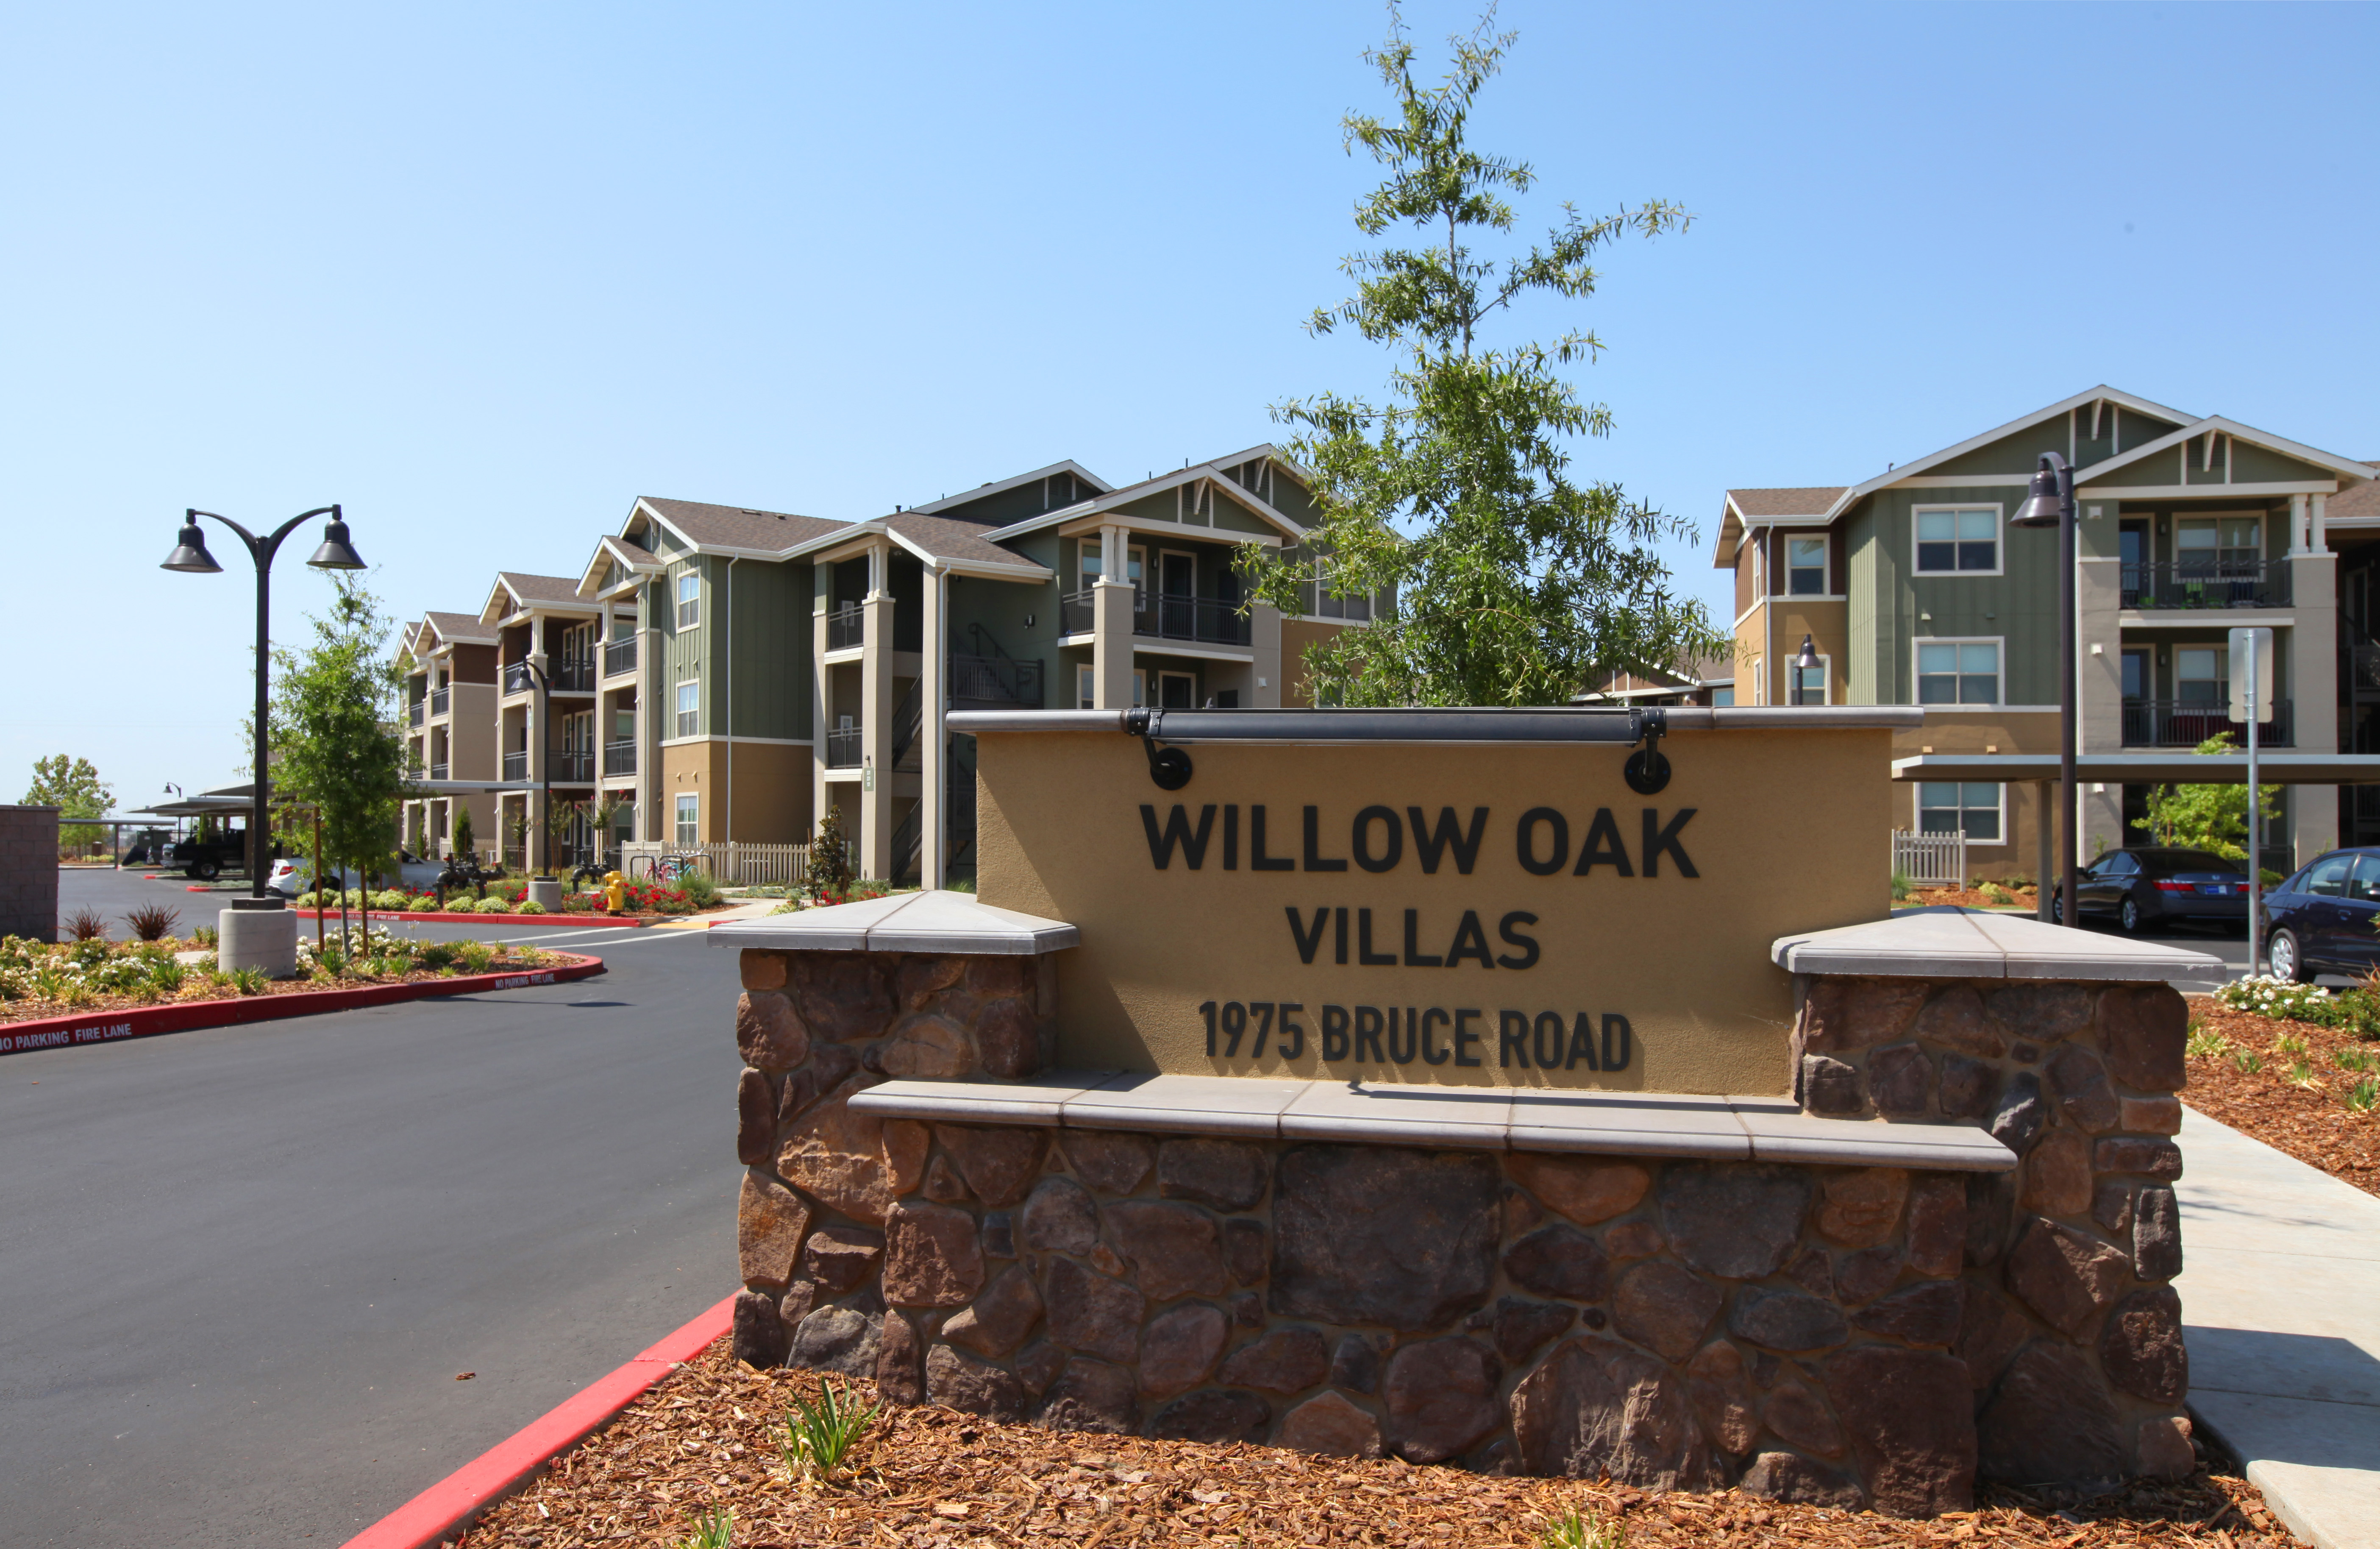 Front of Apartments with view of sign